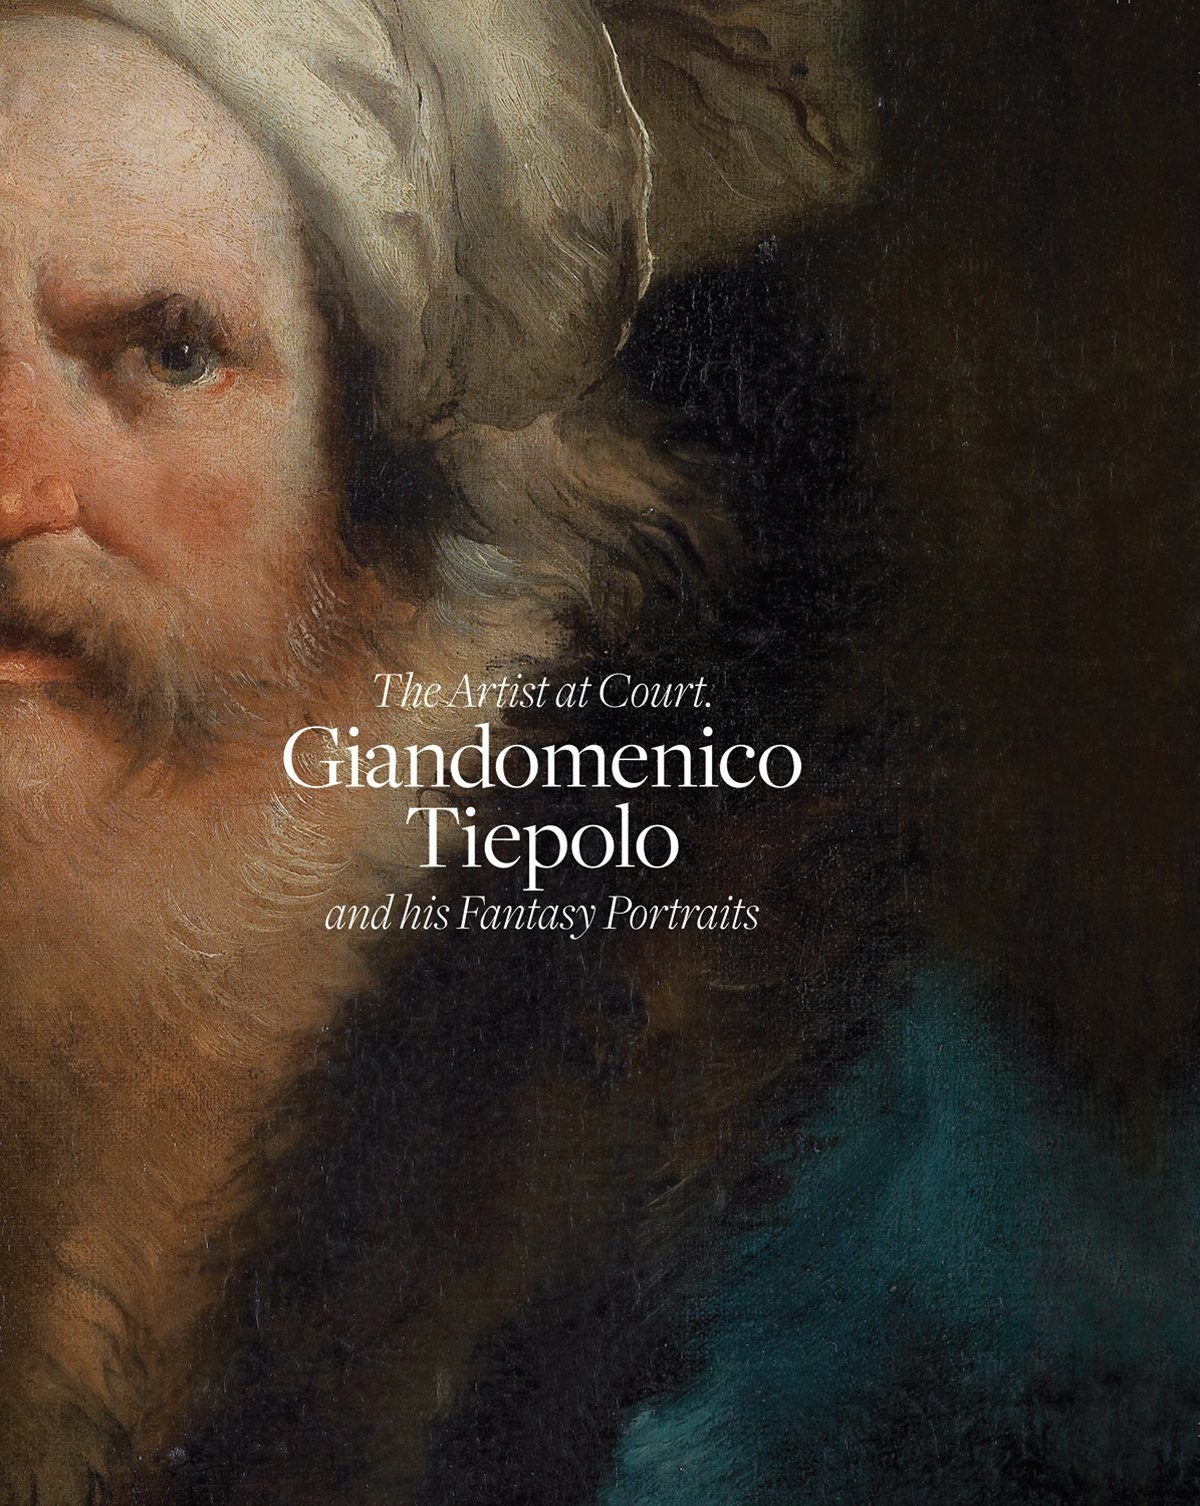 Giandomenico tiepolo 9788461728541